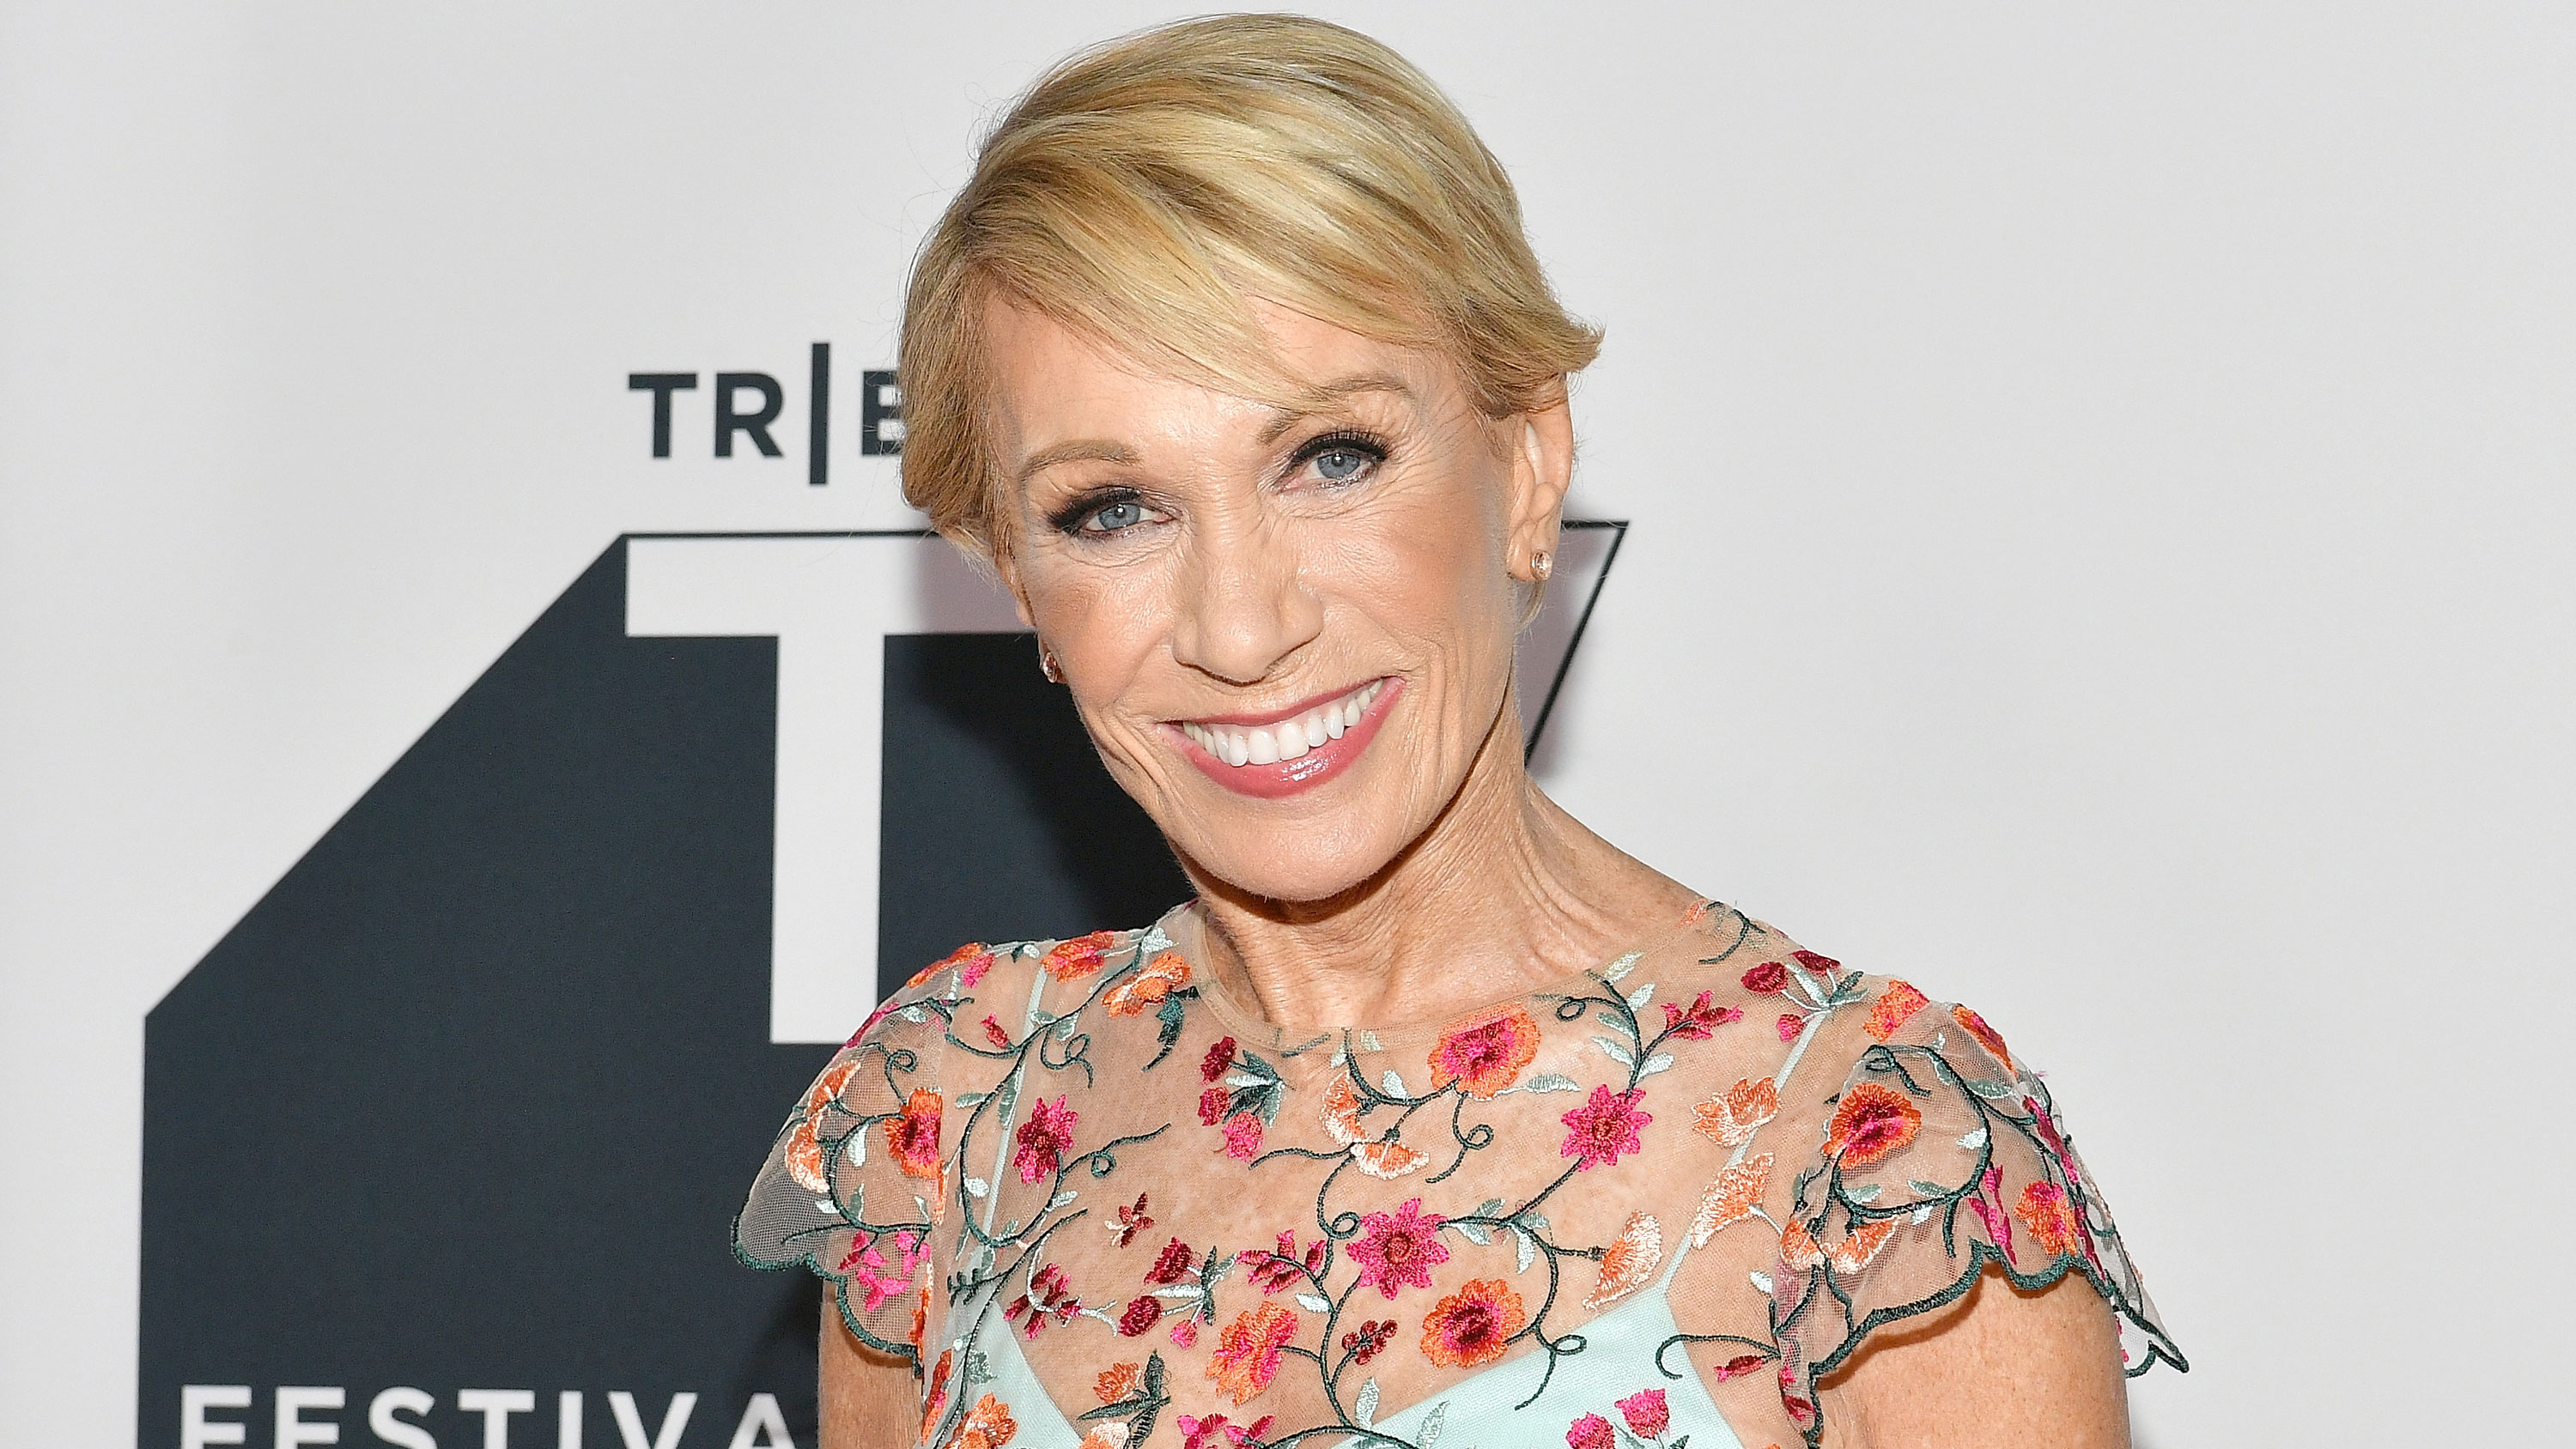 New York Real Estate Mogul Barbara Corcoran Falls Victim To Phishing Scam